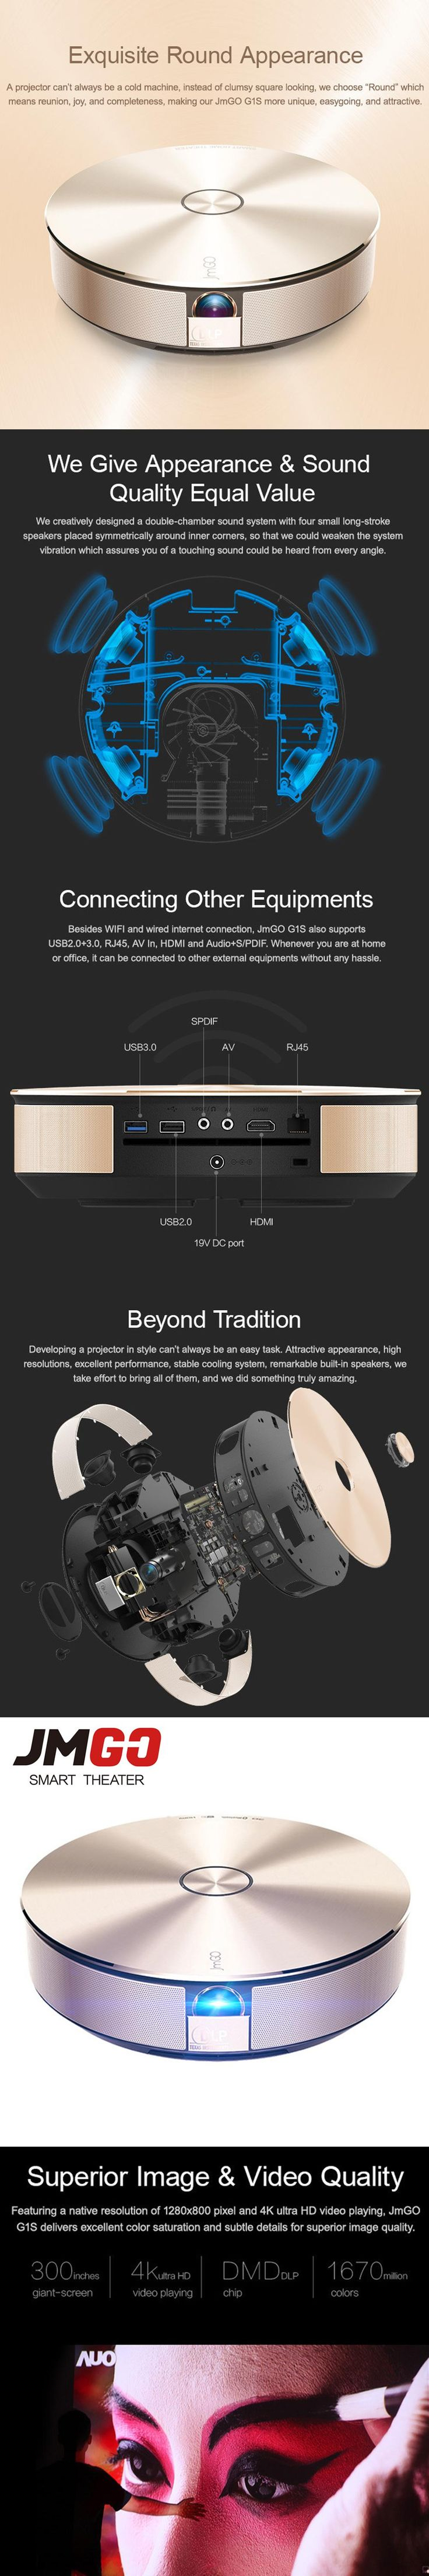 JMGO G1S LED Projector, 1280x800, Digital Zoom 1:2, High-End Android HD Projector, WIFI, Bluetooth Speaker Miracast Airplay